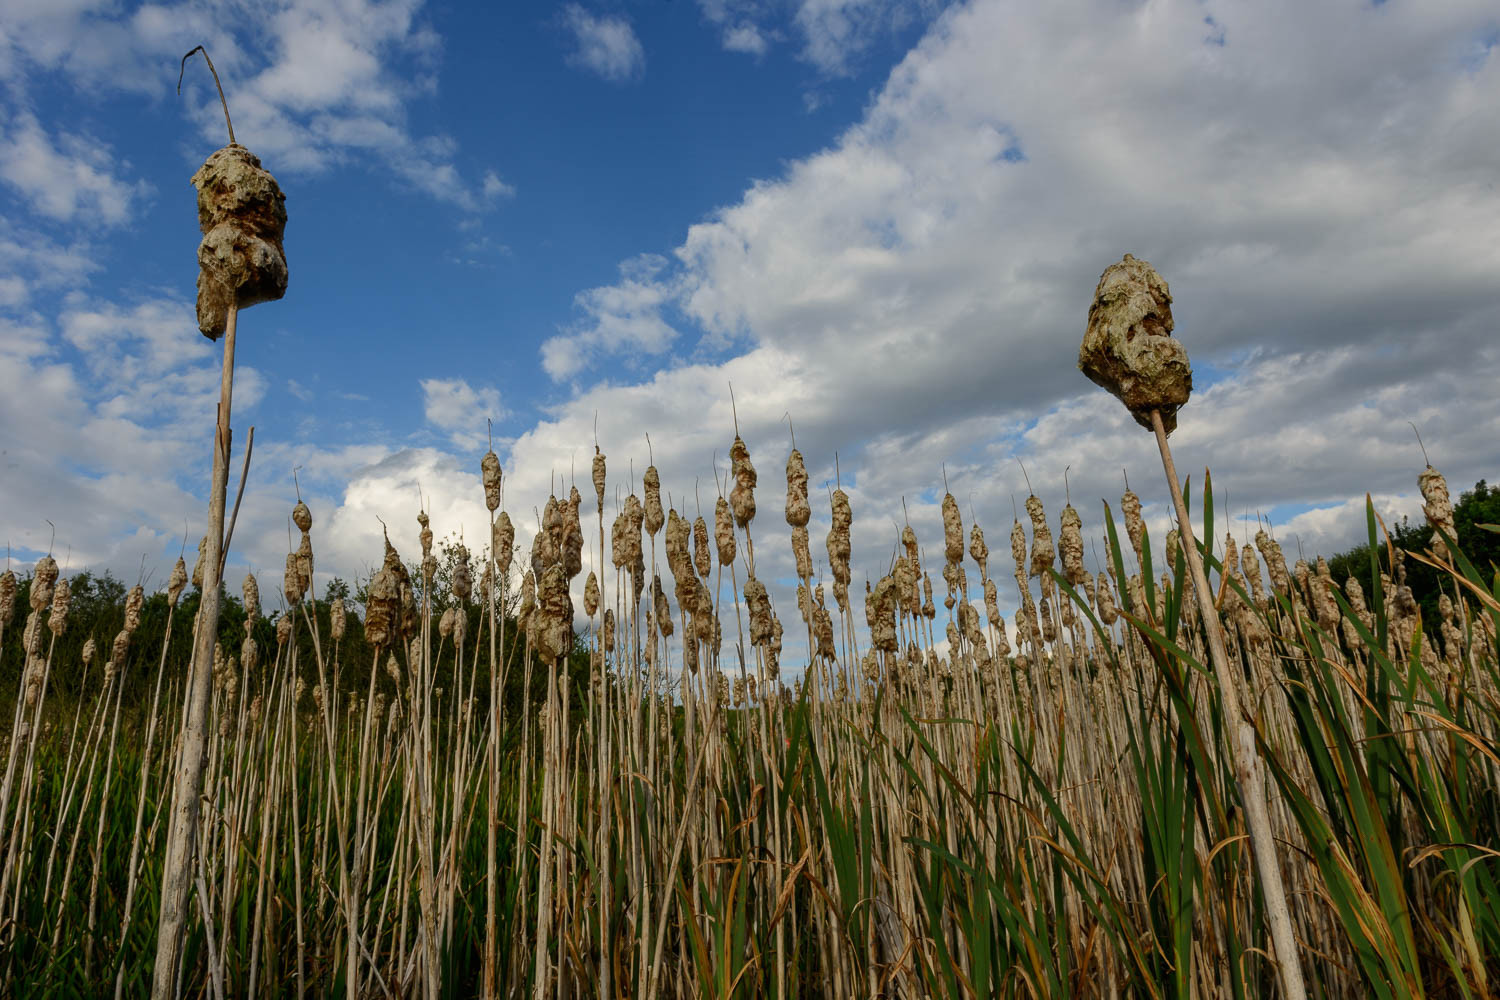 Spiked - Bulrush gone to seed